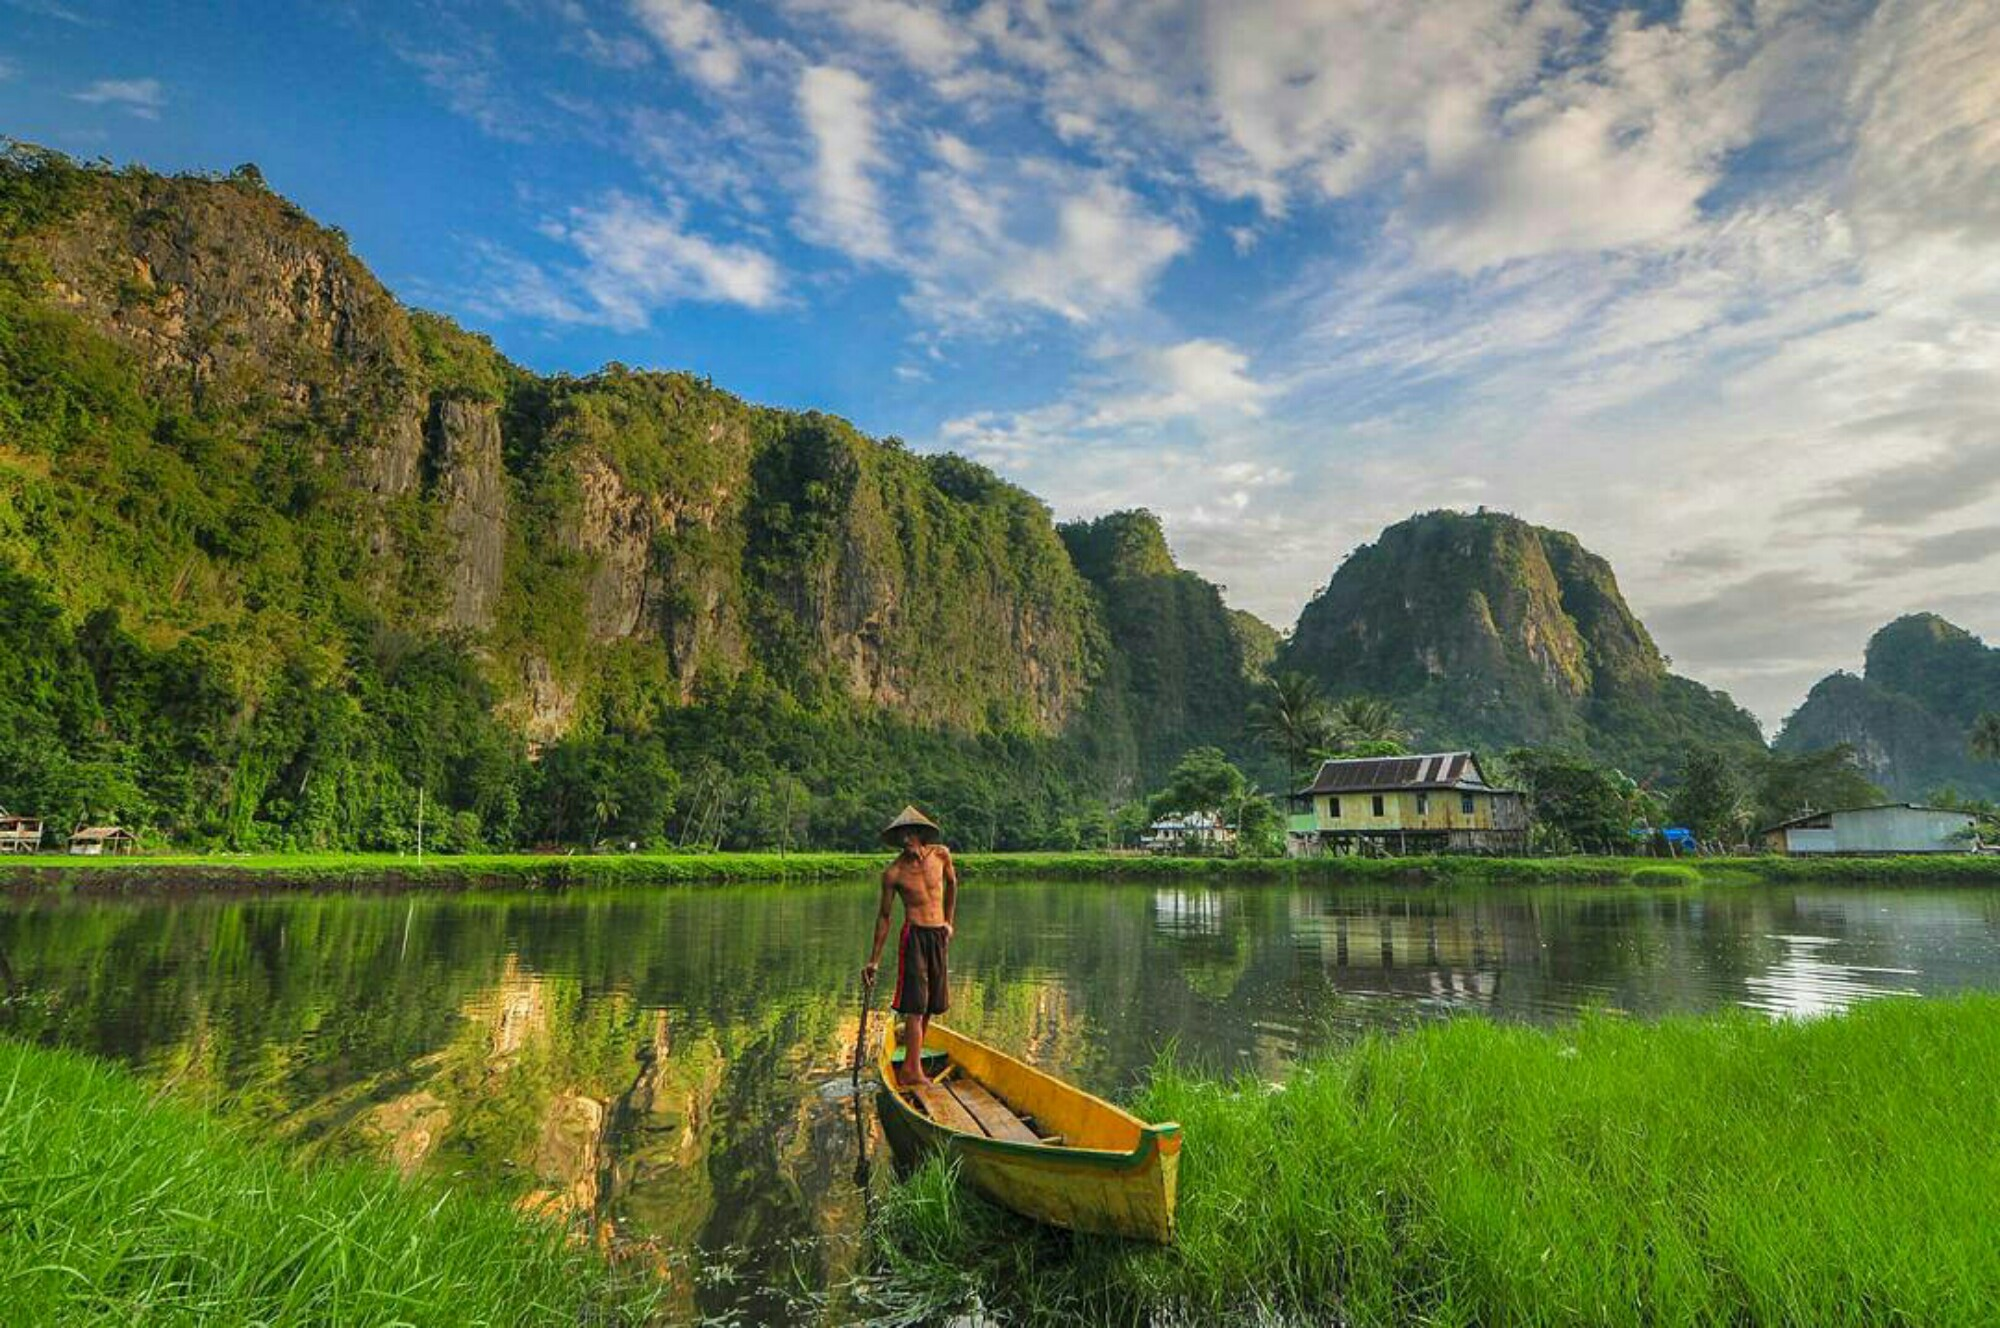 Rammang-Rammang | Foto: authentic-indonesia